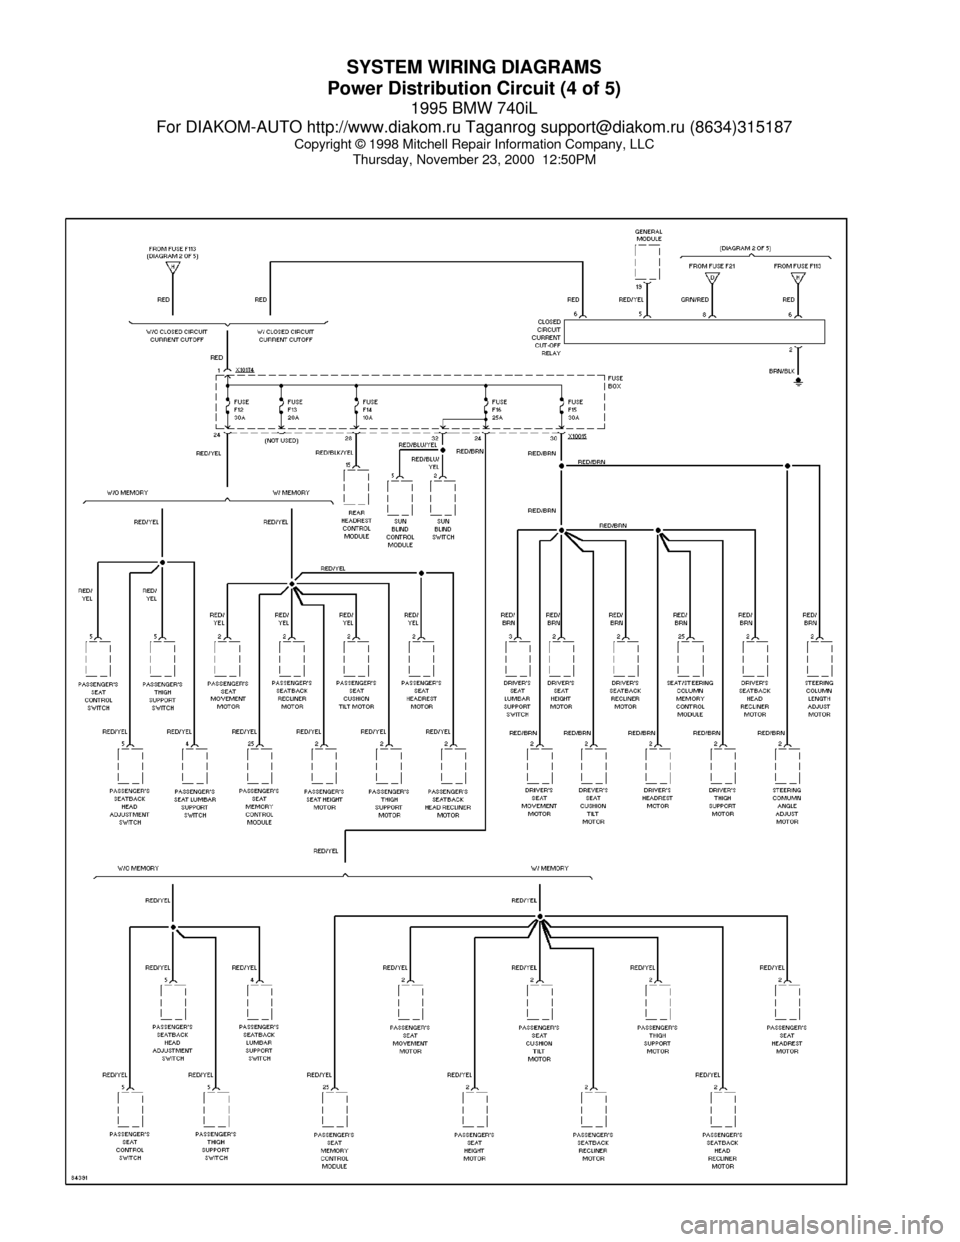 1995 Bmw 740il Engine Diagram Wiring Library E38 System Diagrams